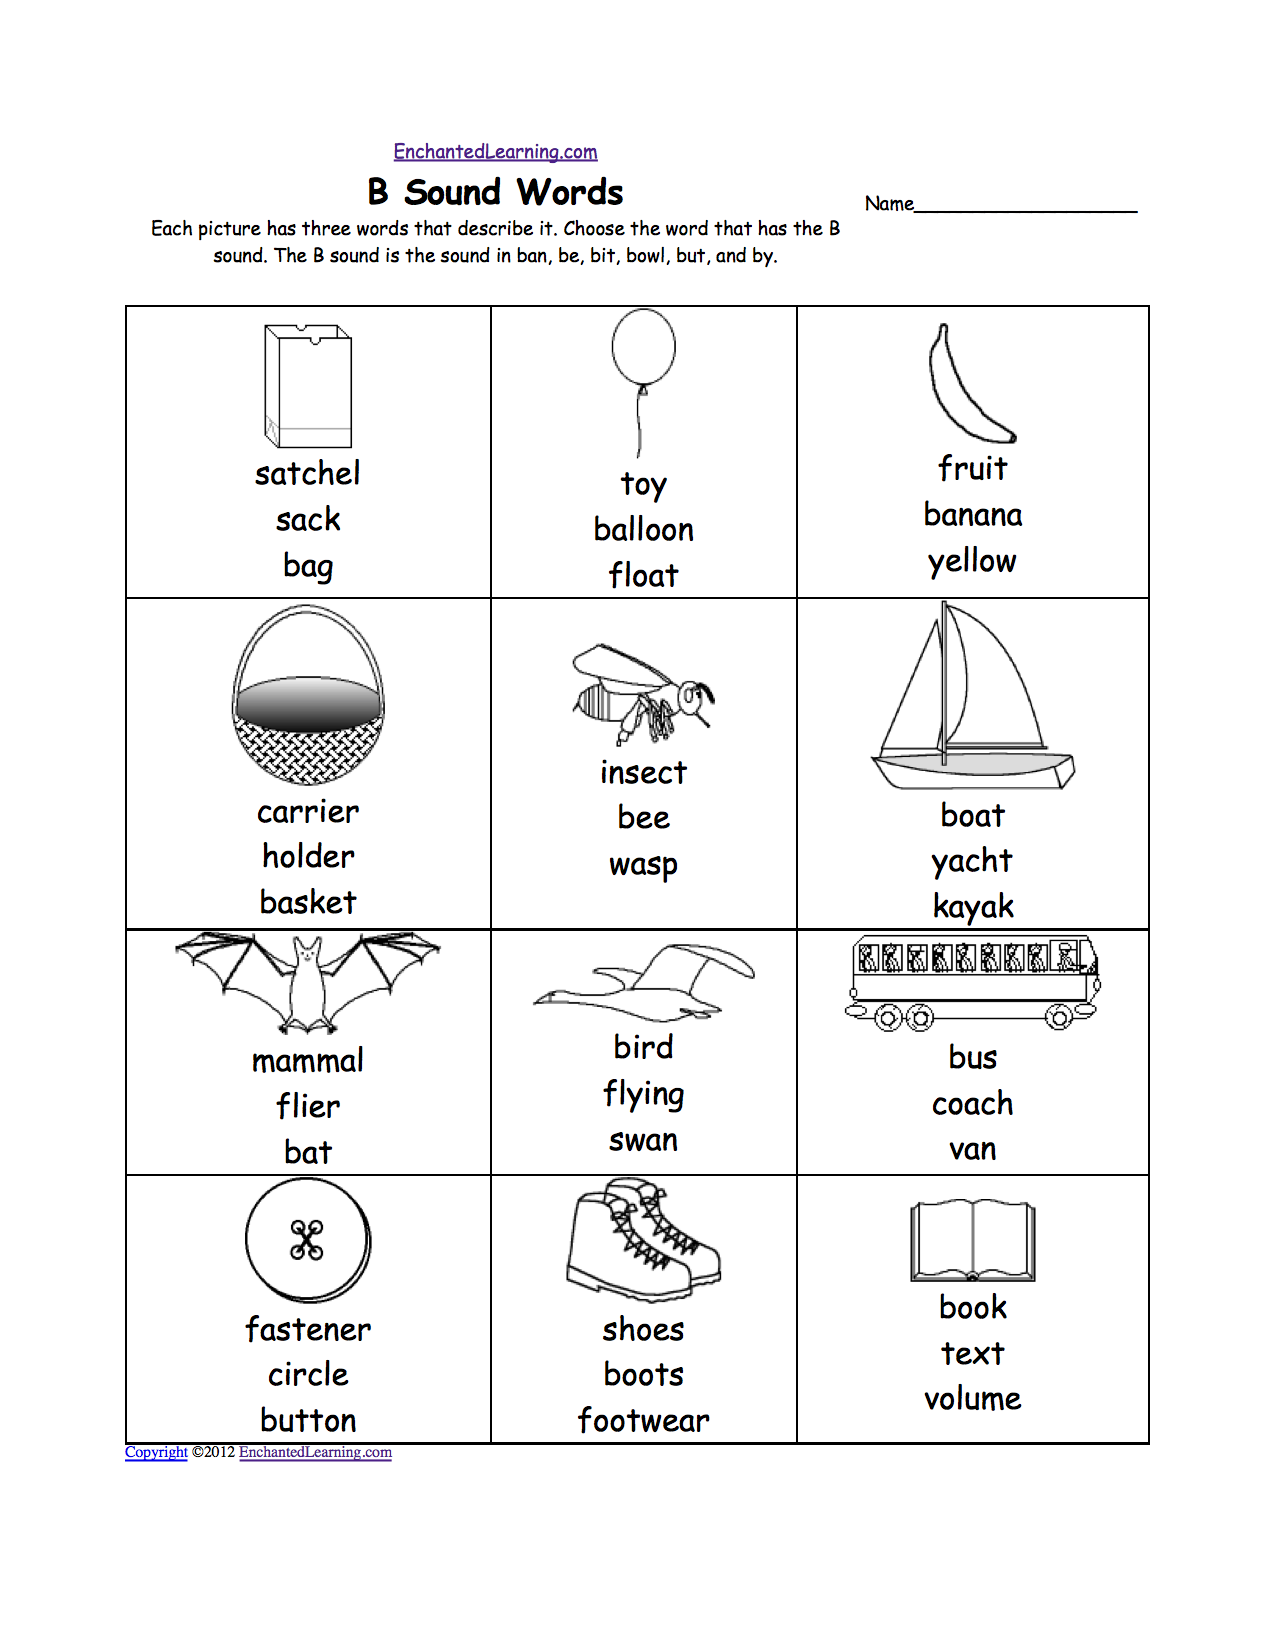 Proatmealus  Sweet Phonics Worksheets Multiple Choice Worksheets To Print  With Remarkable Quotbquot Sound Phonics Worksheet Multiple Choice Each Picture Has Three Words That Describe It Choose The Word That Has A Quotbquot Sound The Quotbquot Sound Is The Sound  With Amusing Identifying Money Worksheets Also Parabola Word Problems Worksheet In Addition Reading Comprehension Worksheets For Th Grade Multiple Choice And Printable Rd Grade Worksheets As Well As Kindergarten Math Facts Worksheets Additionally Characteristics Of Waves Worksheet From Enchantedlearningcom With Proatmealus  Remarkable Phonics Worksheets Multiple Choice Worksheets To Print  With Amusing Quotbquot Sound Phonics Worksheet Multiple Choice Each Picture Has Three Words That Describe It Choose The Word That Has A Quotbquot Sound The Quotbquot Sound Is The Sound  And Sweet Identifying Money Worksheets Also Parabola Word Problems Worksheet In Addition Reading Comprehension Worksheets For Th Grade Multiple Choice From Enchantedlearningcom